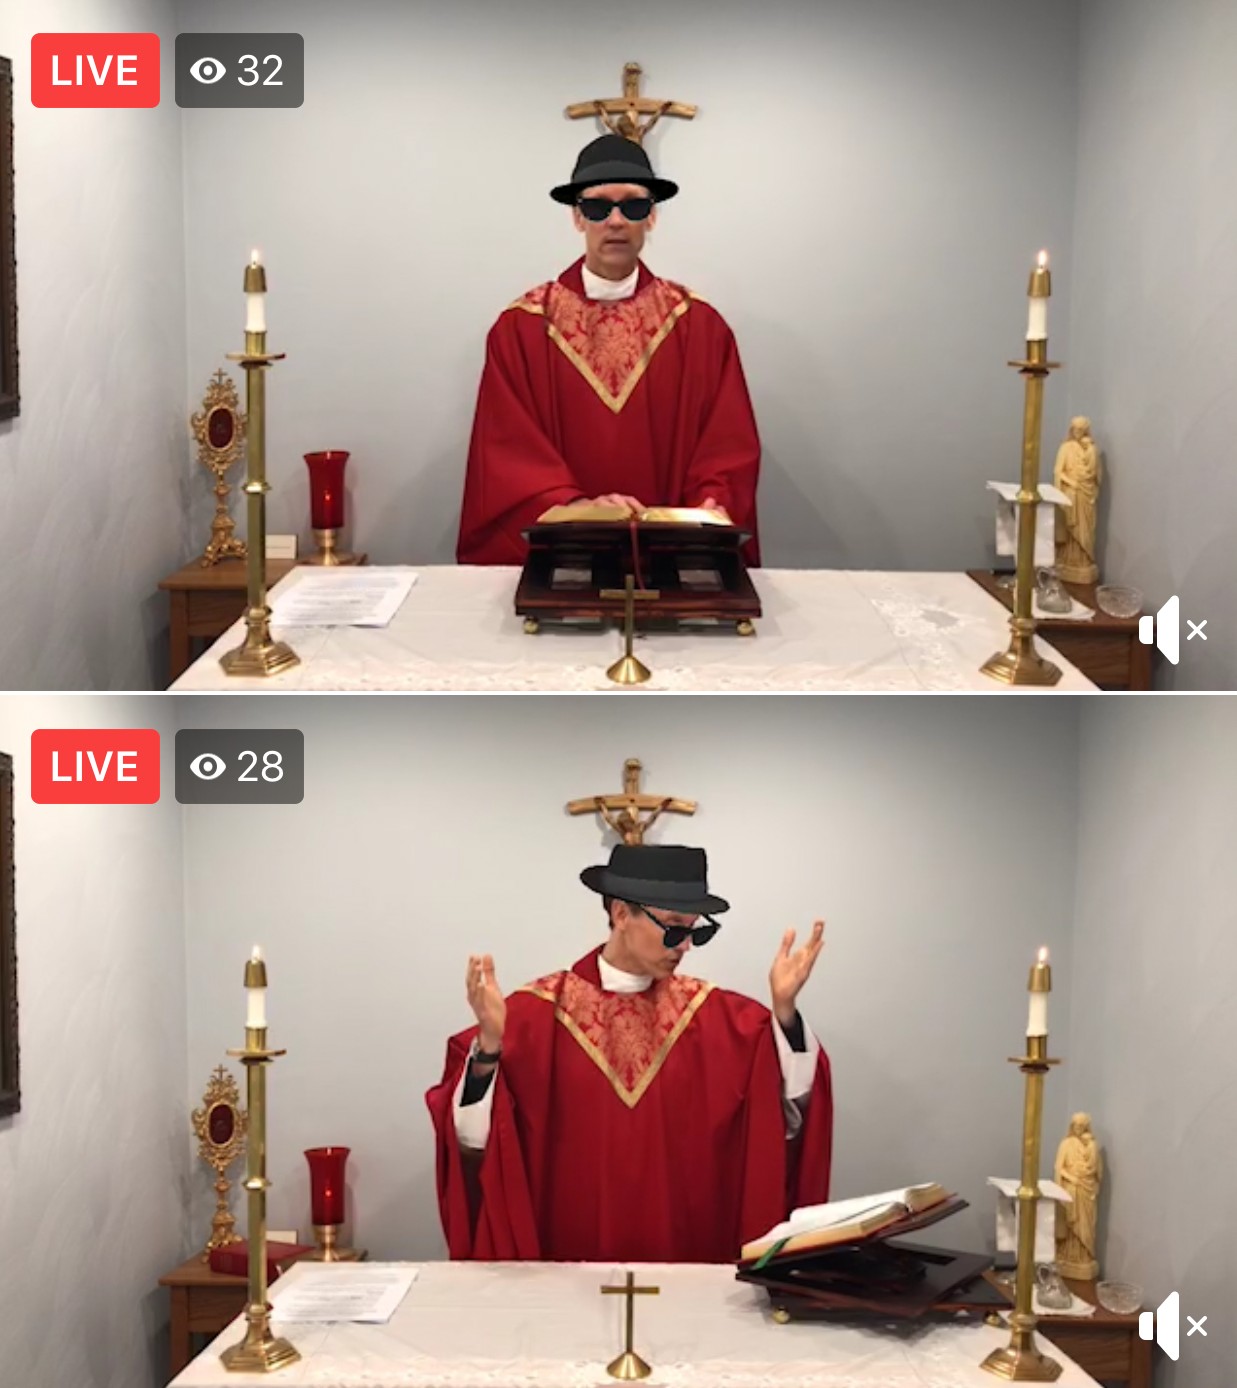 Priest accidentally live-streams mass with sunglasses and hat filter